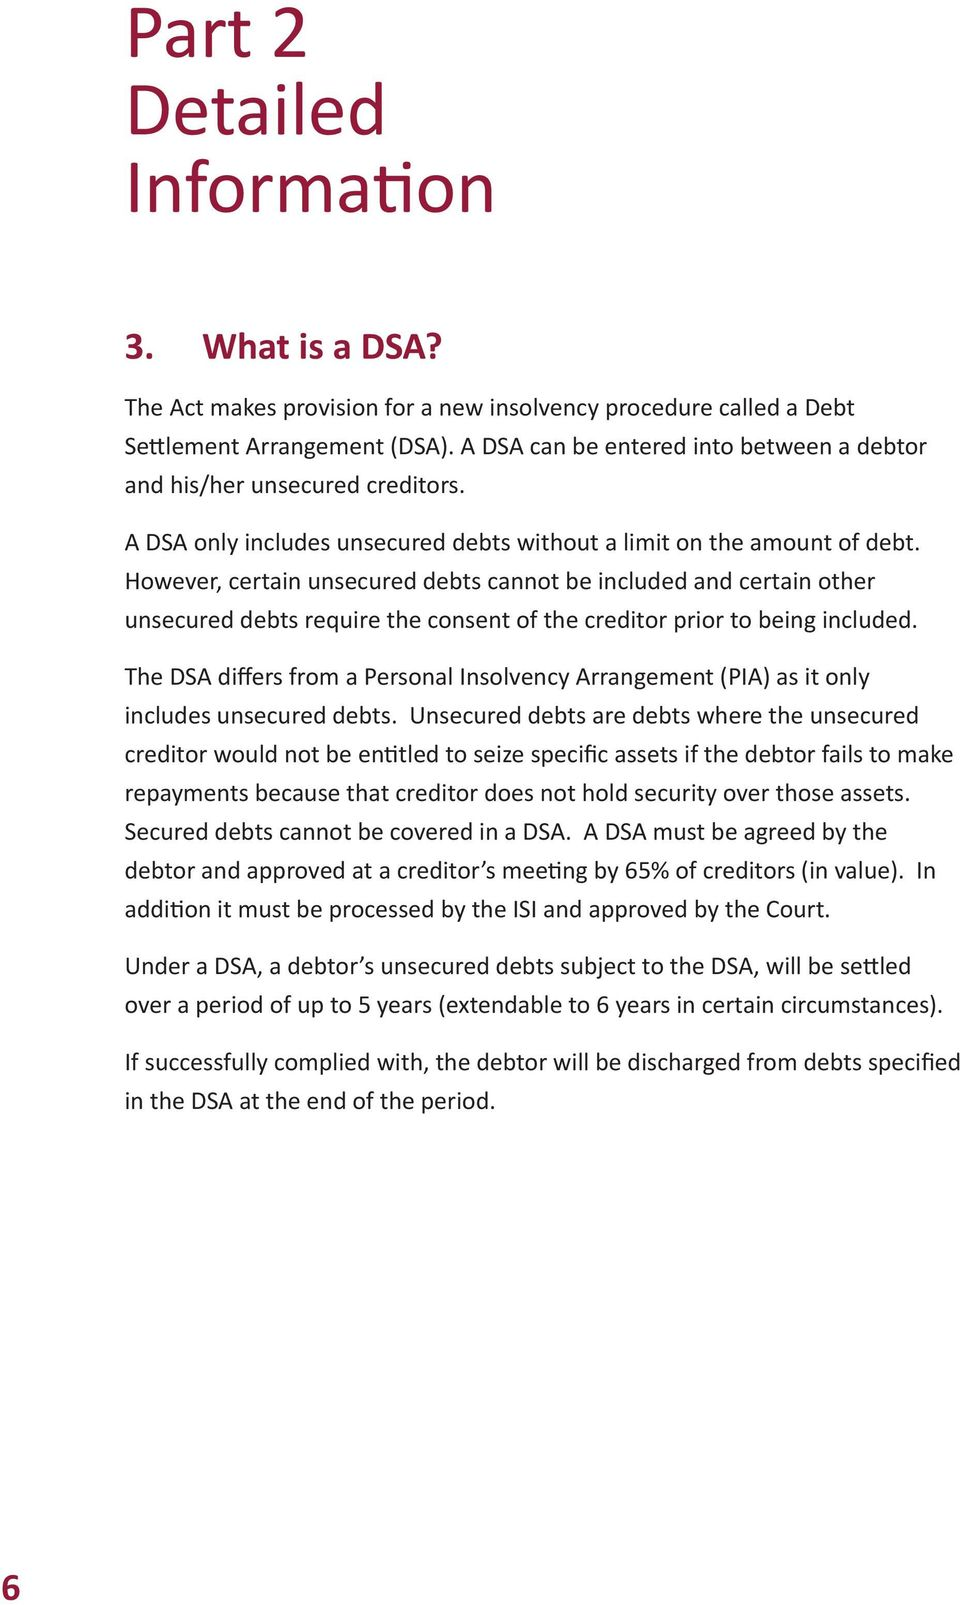 However, certain unsecured debts cannot be included and certain other unsecured debts require the consent of the creditor prior to being included.